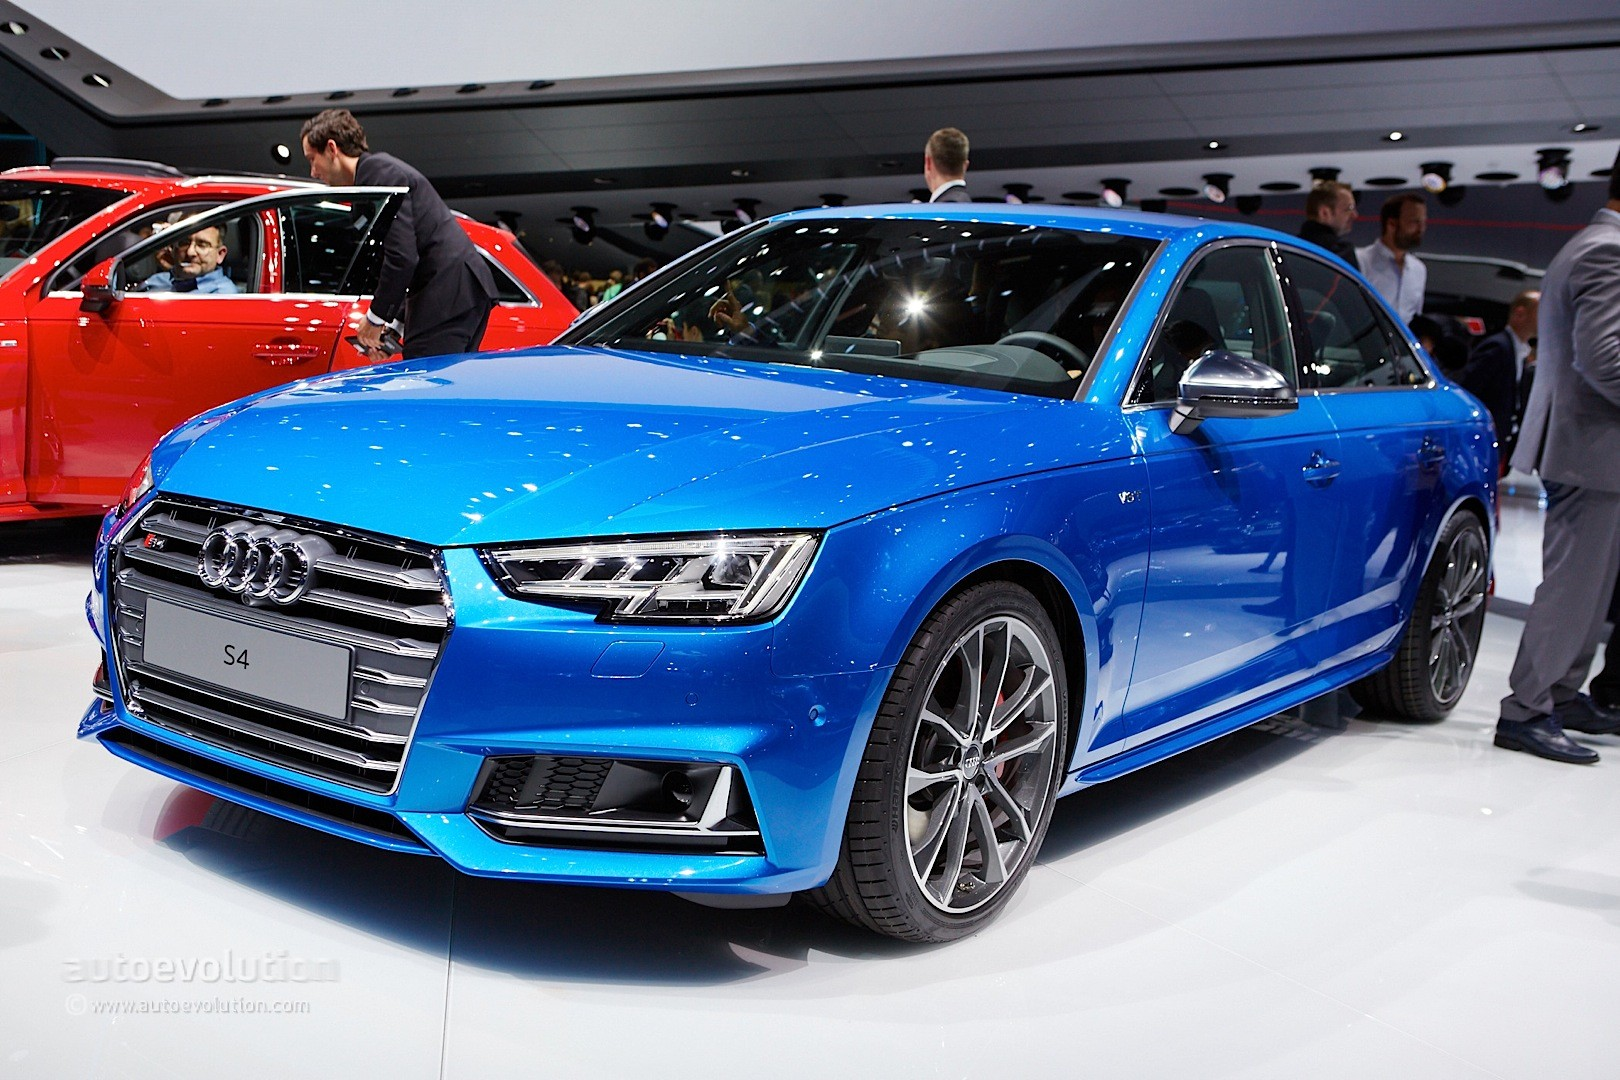 2018 Audi S4 Specs and Pricing Announced in the US: 0 to 60 in 4.4